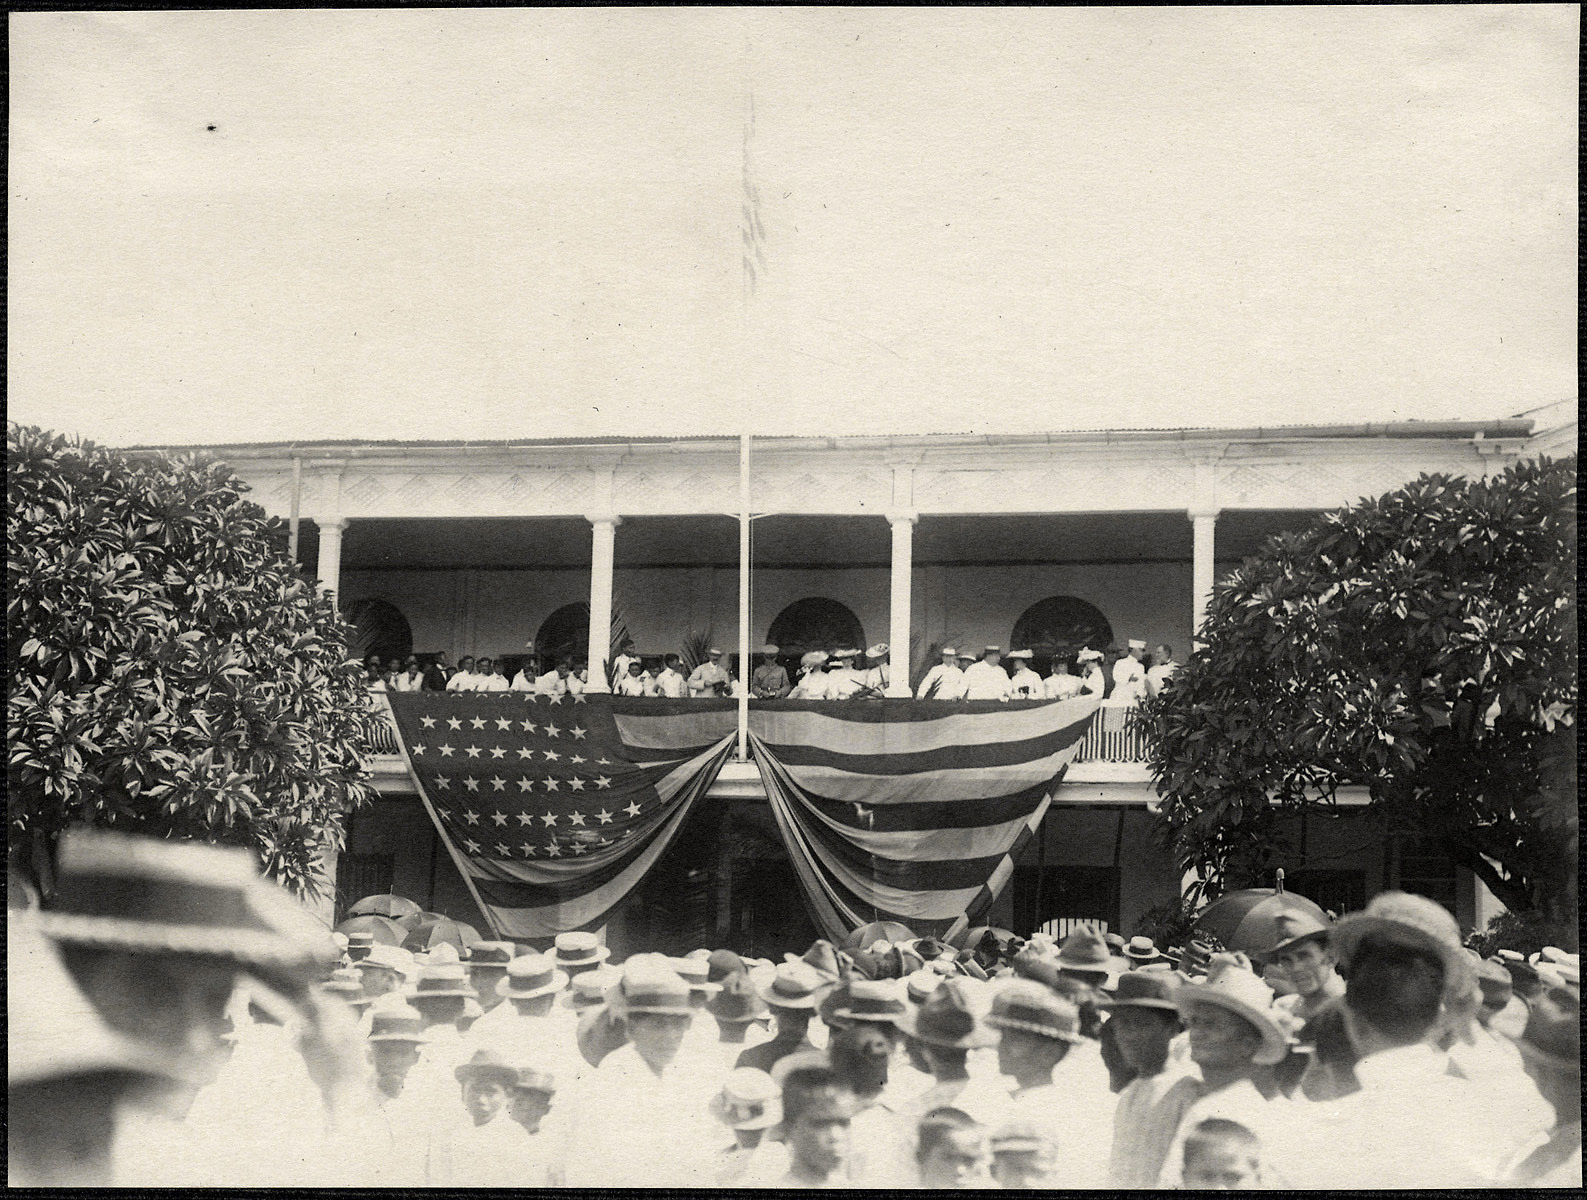 Manila: Americans on a balcony above a crowd